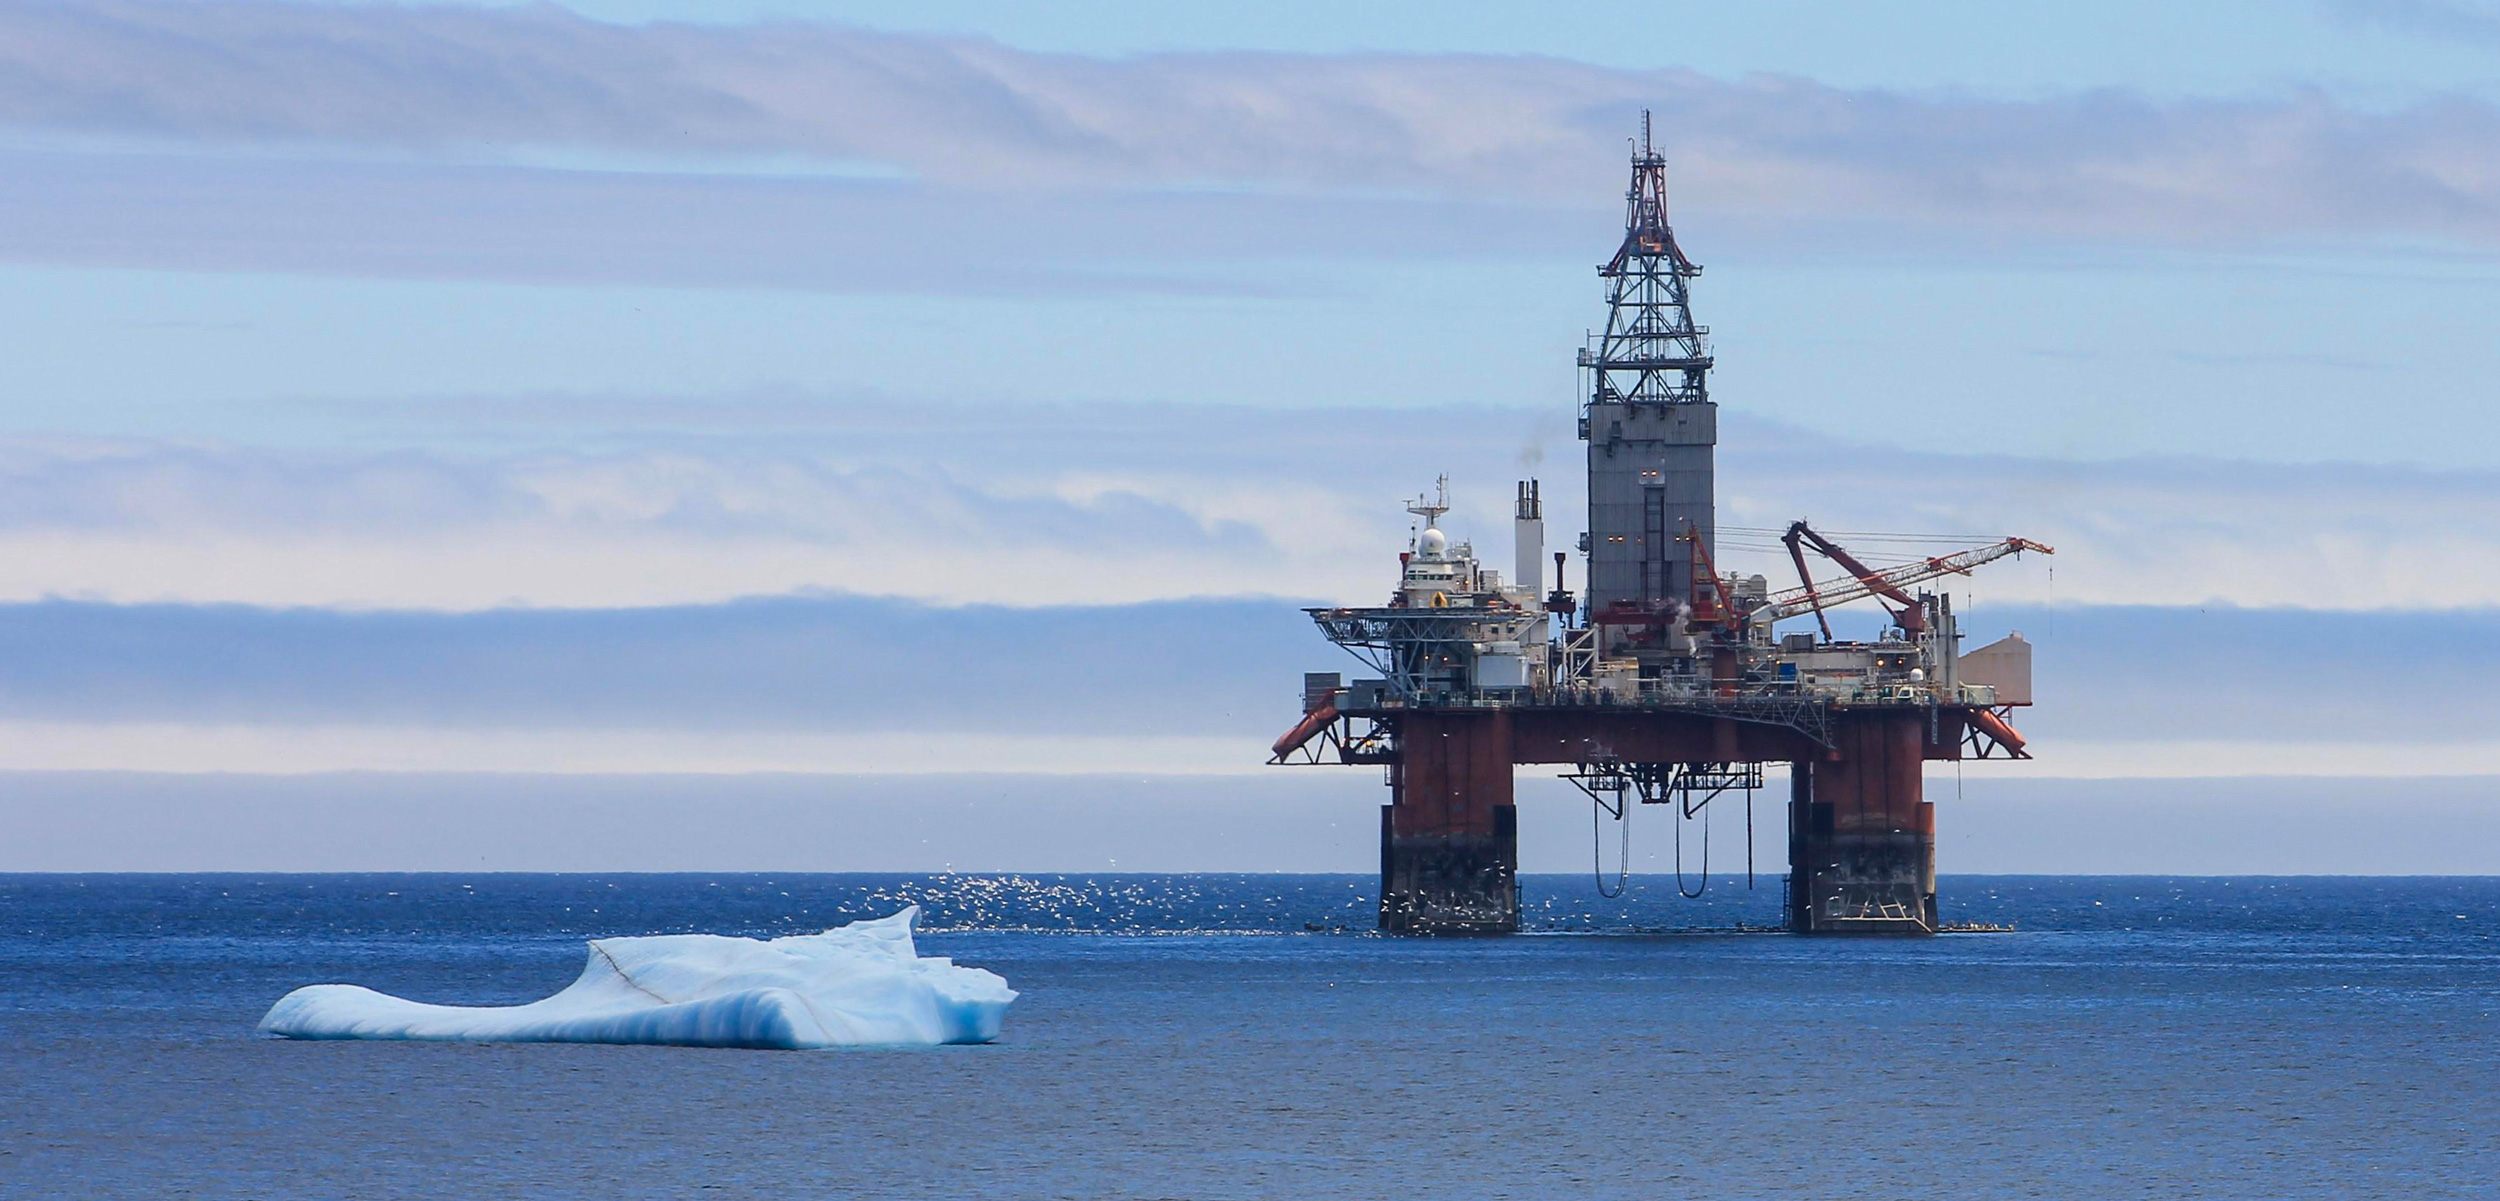 An Iceberg floating by an oil rig, Newfoundland and Labrador, Canada